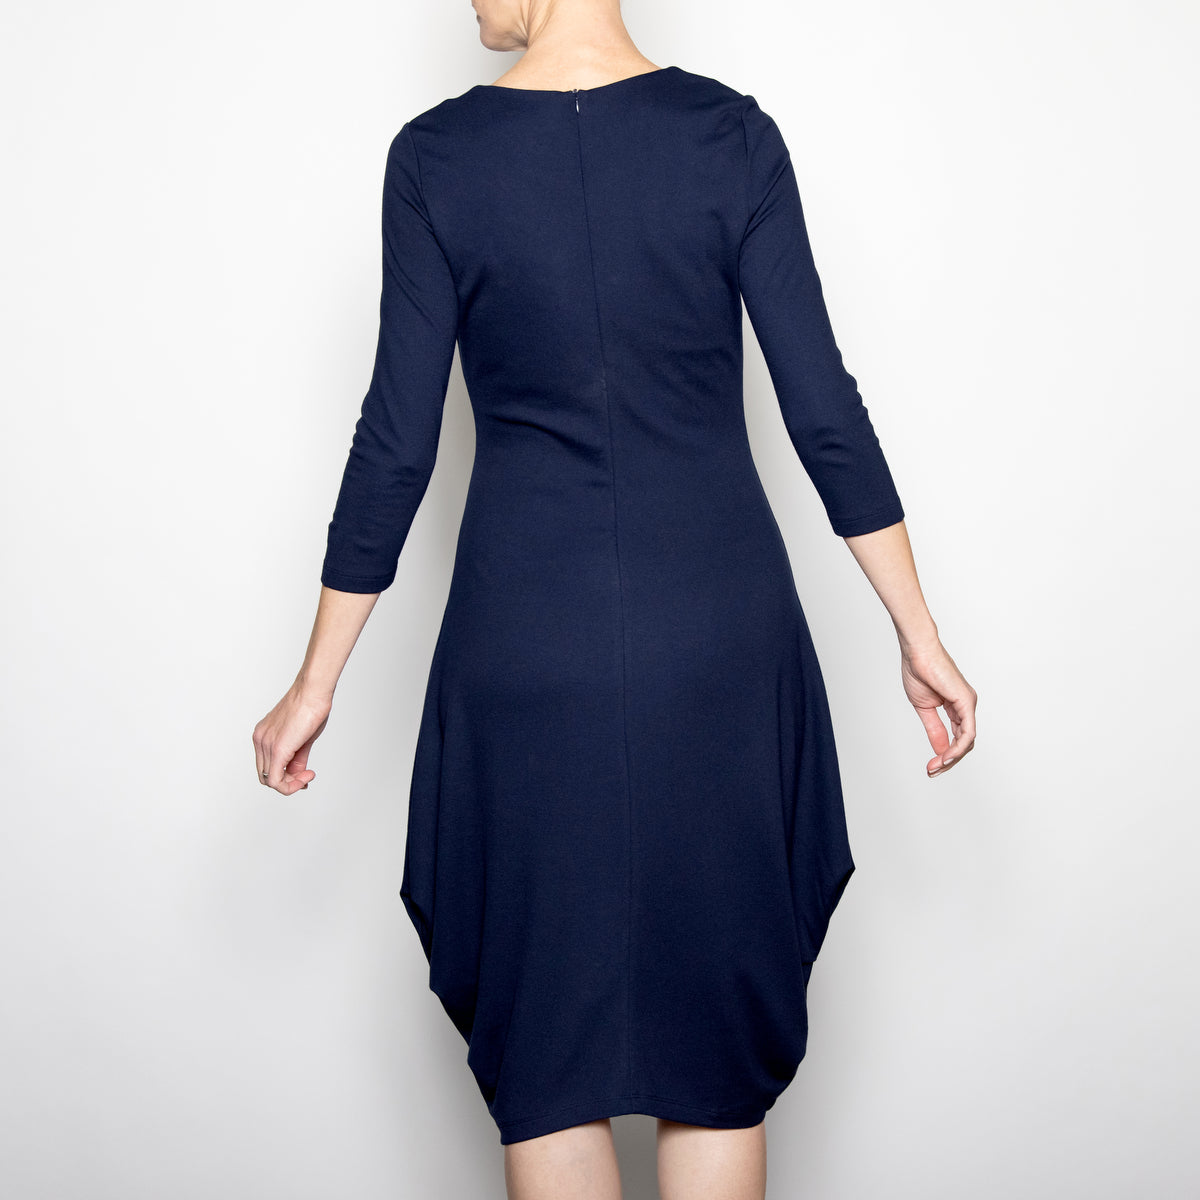 Ever Sassy Jersey Dress in Navy